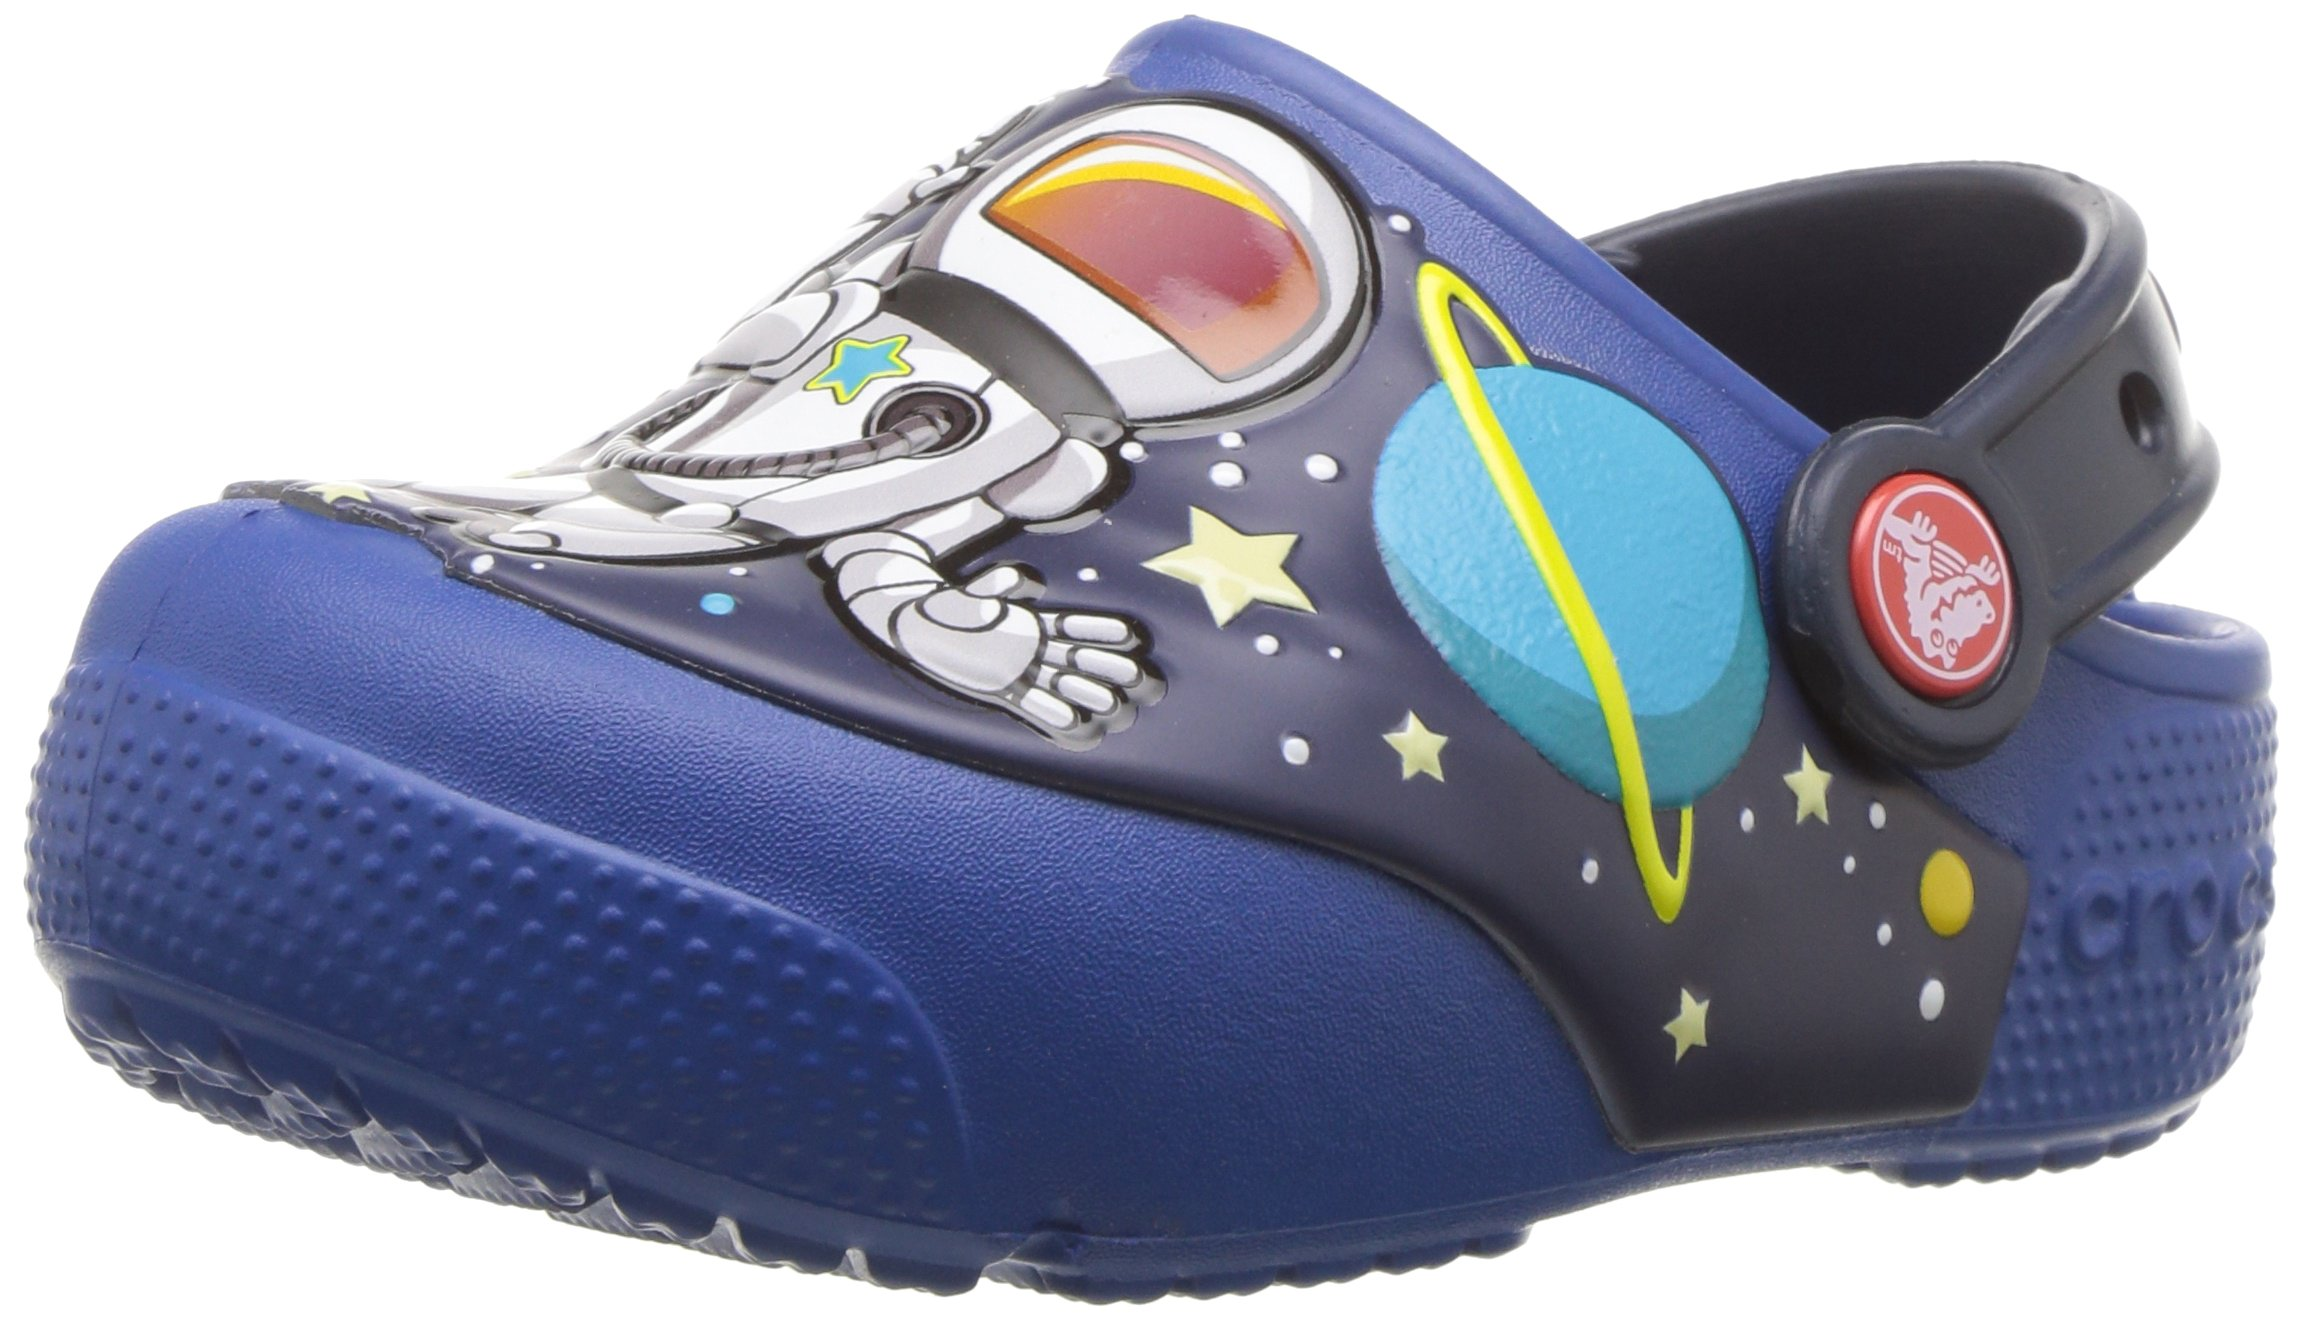 Crocs Unisex-Kids Funlab Spaceexp Lights Clog, Blue Jean, 13 M US Little Kid